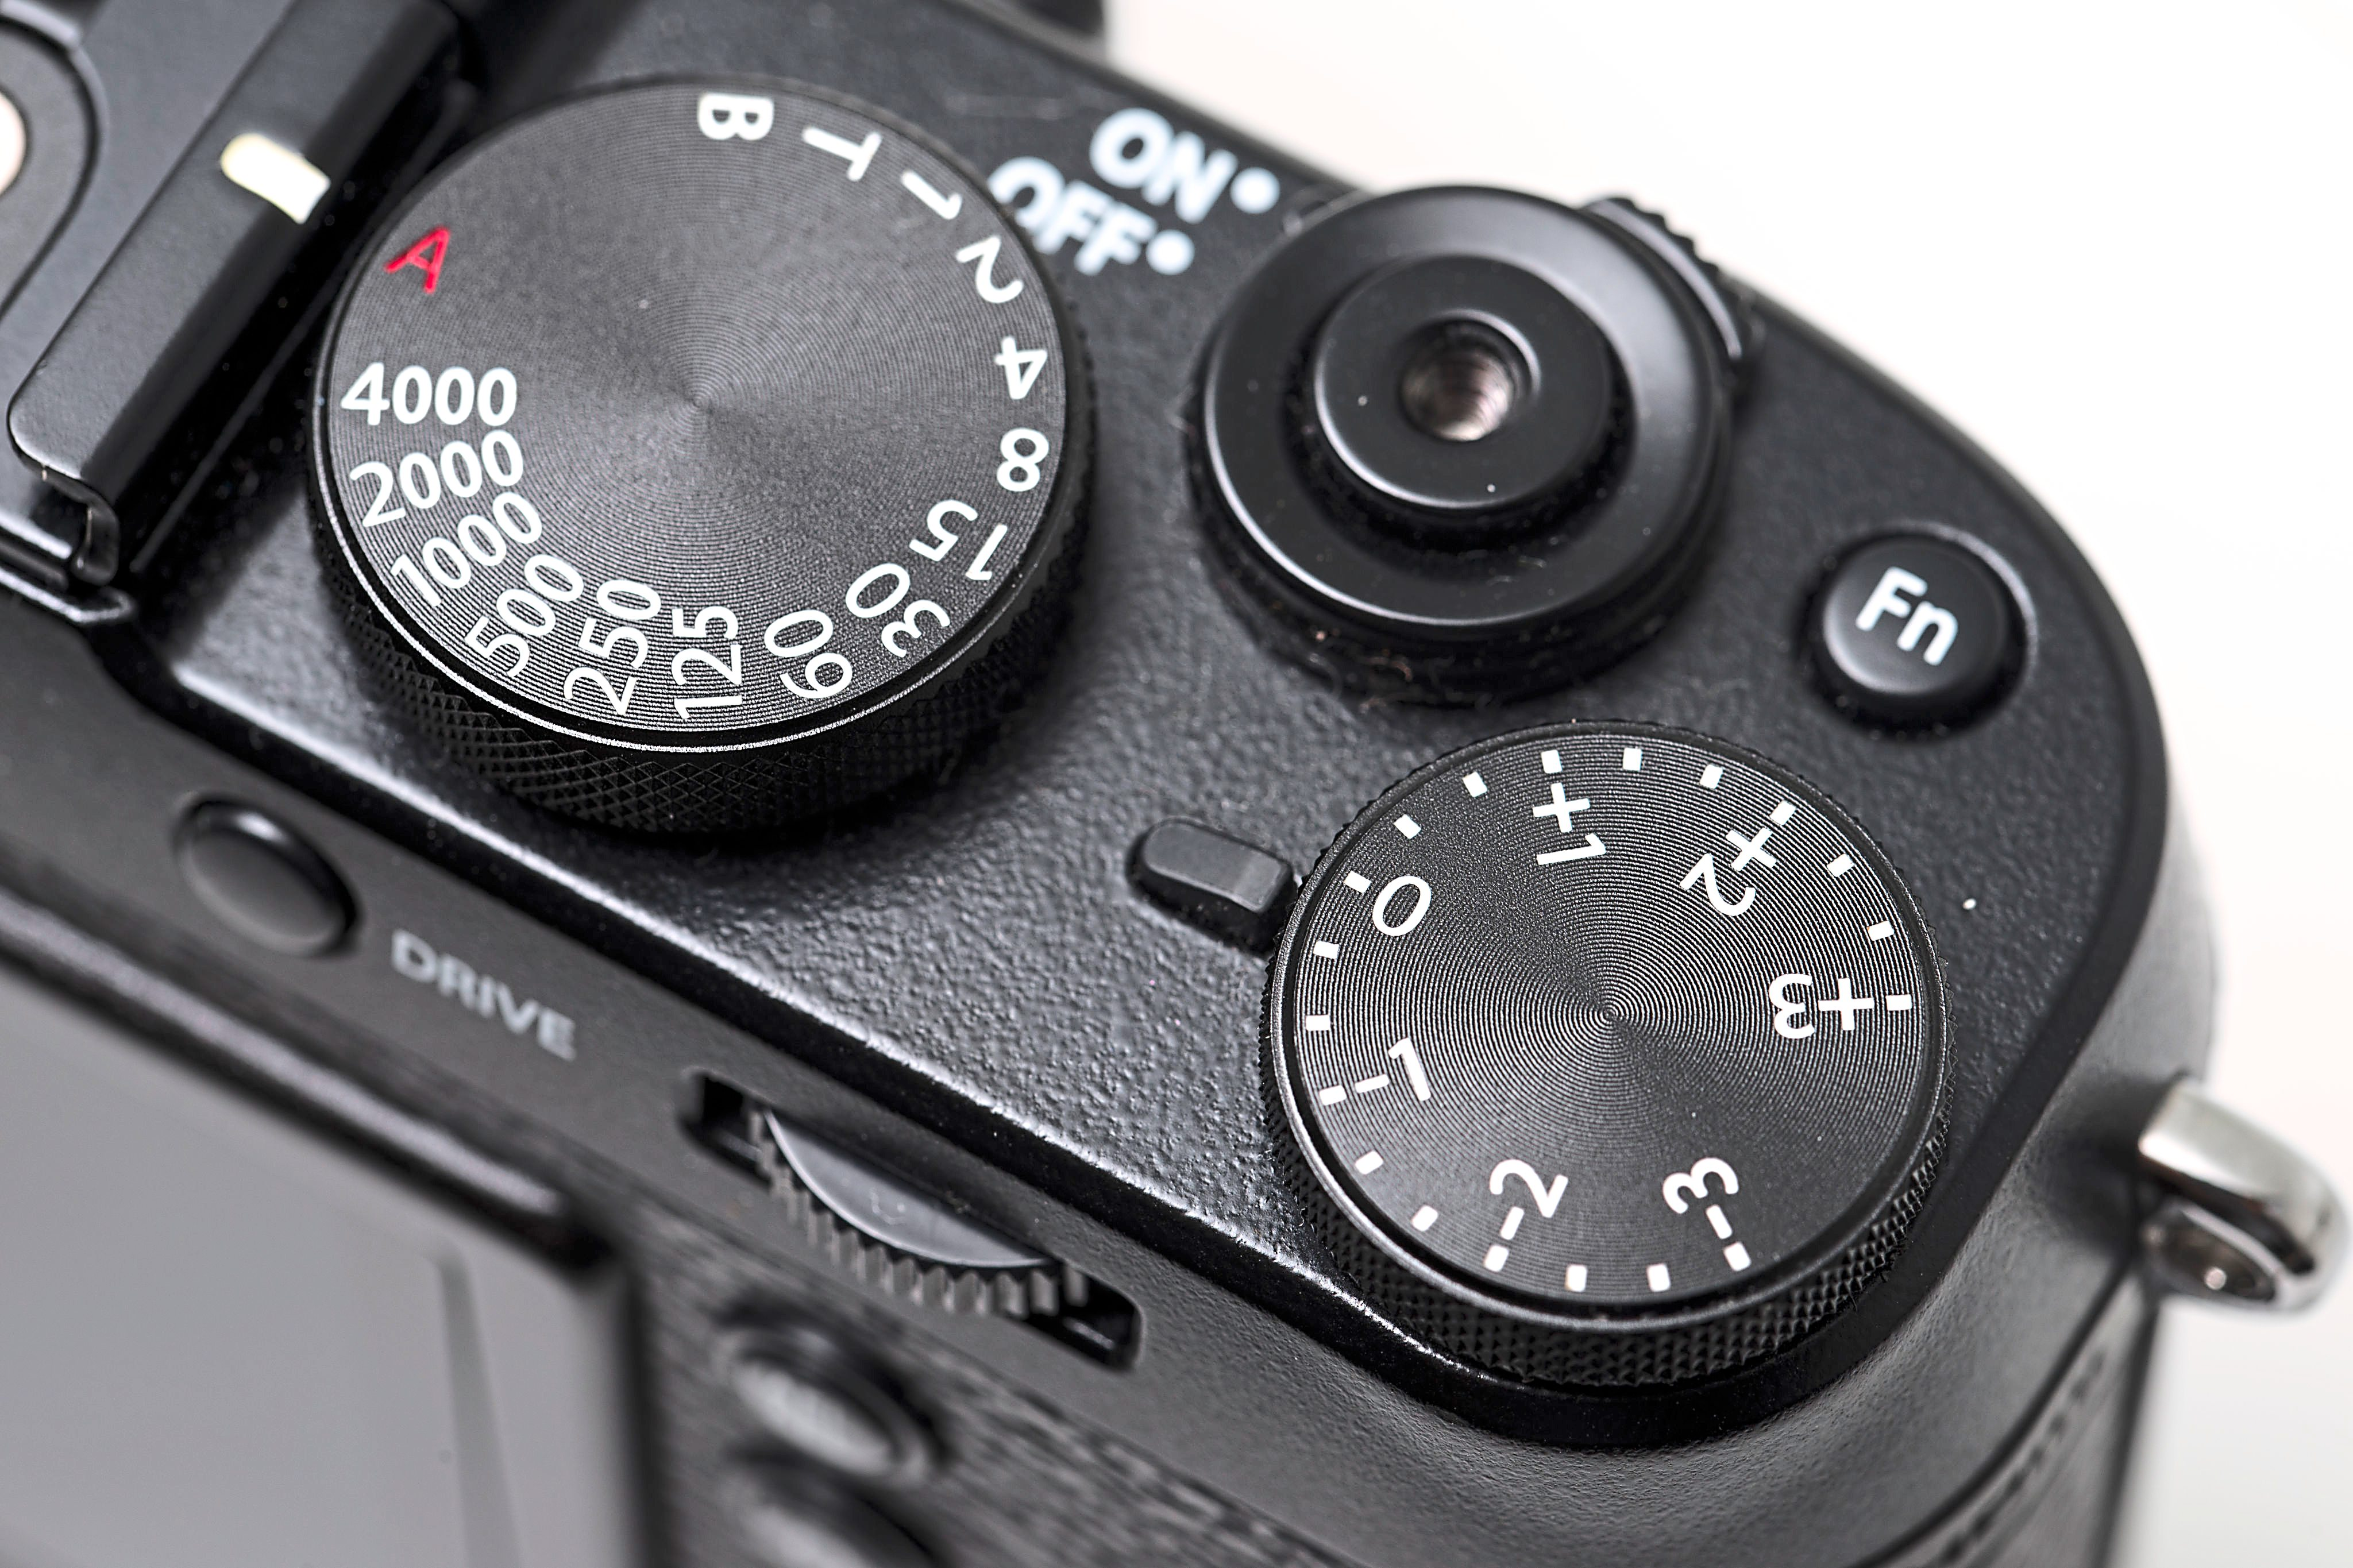 The top plate of the camera has a very simple and easy to understand layout.